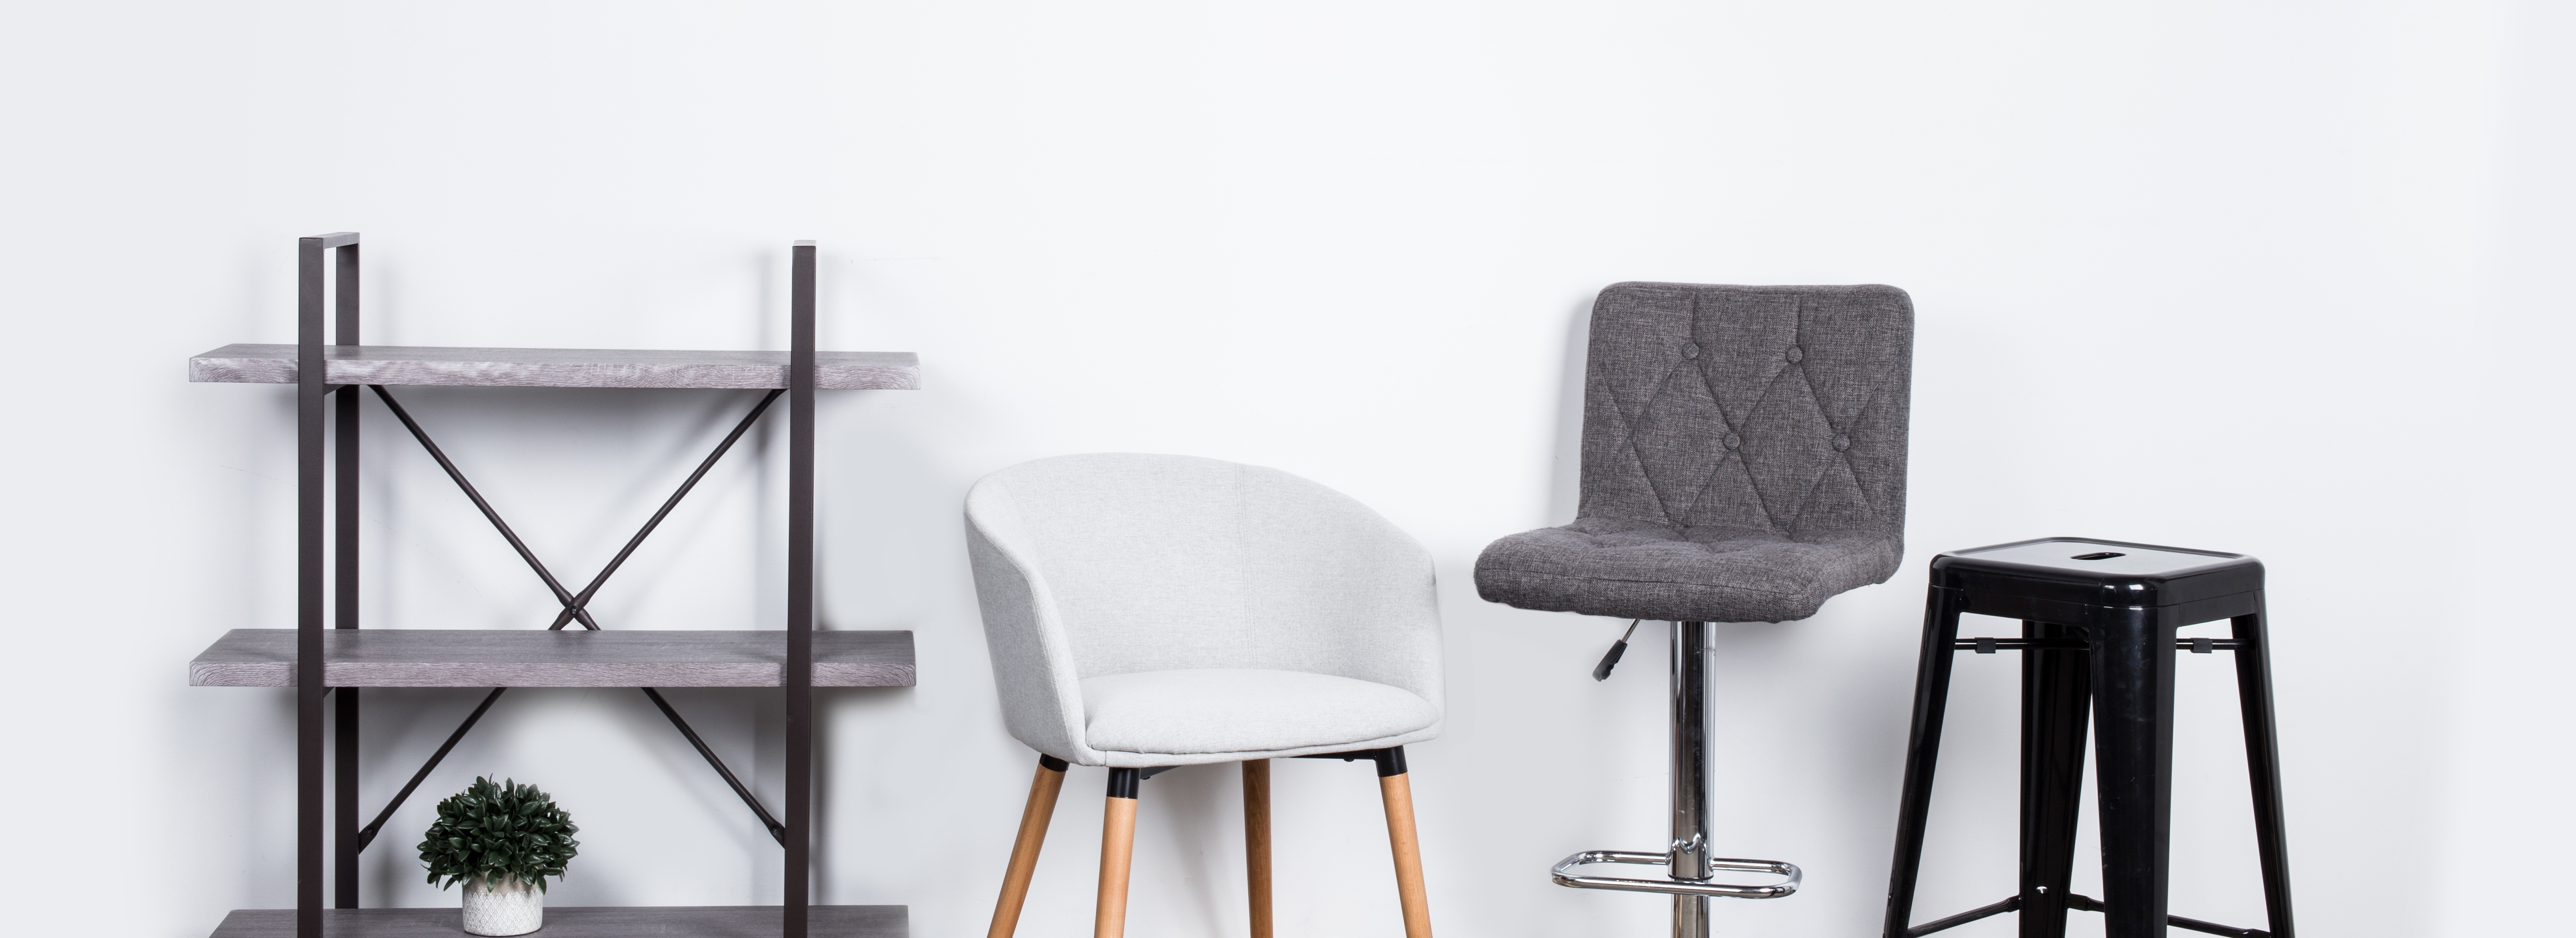 Add Style to Your Dining Area With Dining Chairs Sydney